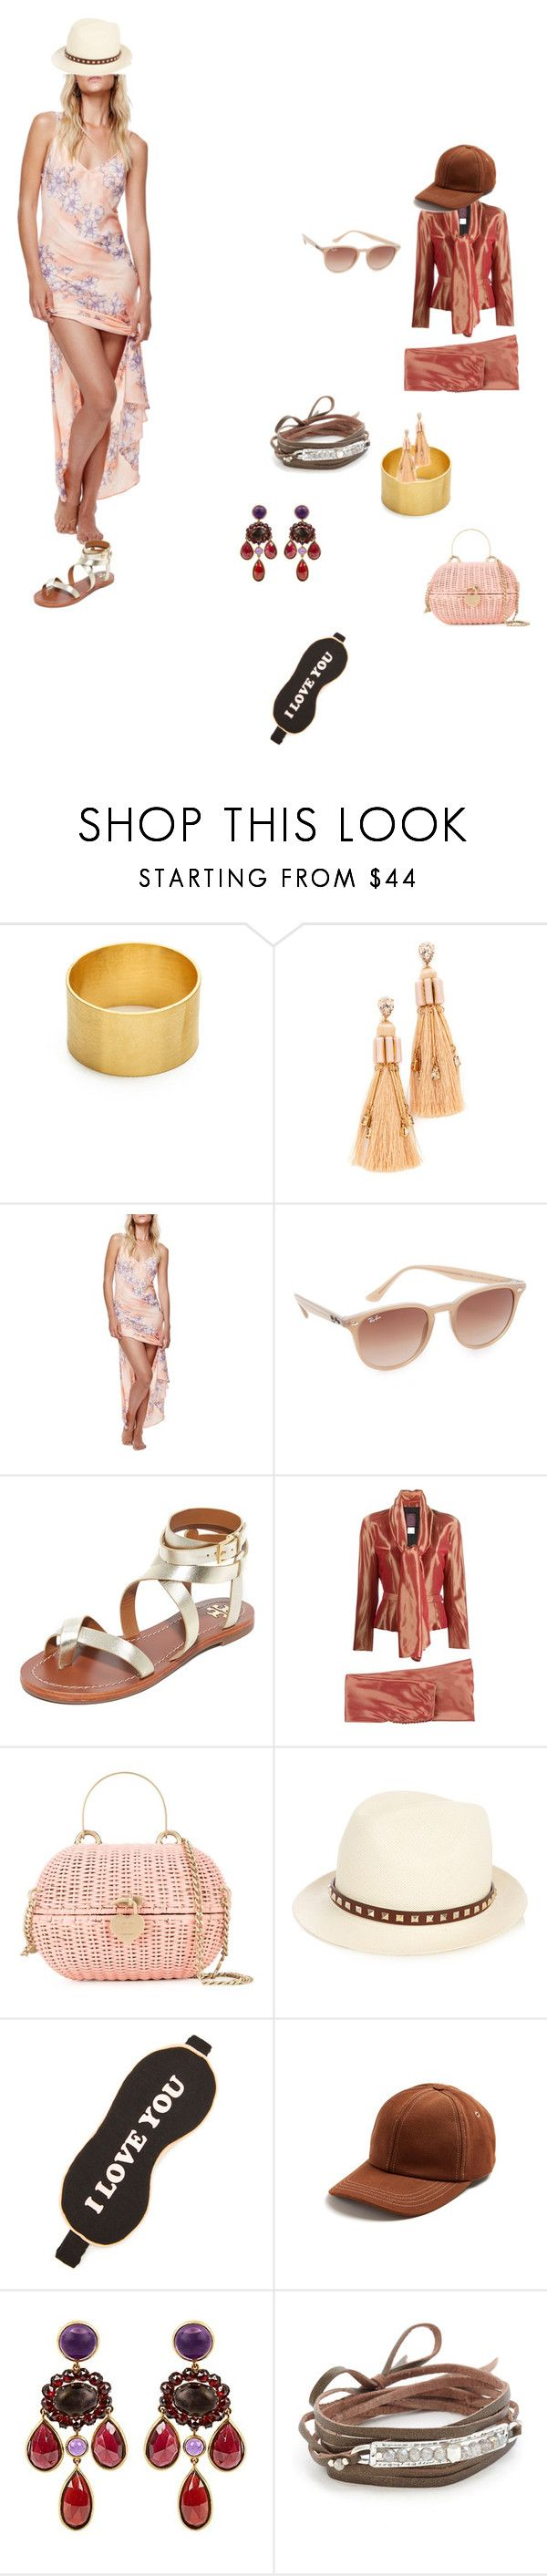 """style stories"" by ramakumari ❤ liked on Polyvore featuring Maya Magal, Elizabeth Cole, Free People, Ray-Ban, Tory Burch, John Galliano, Chanel, Valentino, Wildfox and AMI"